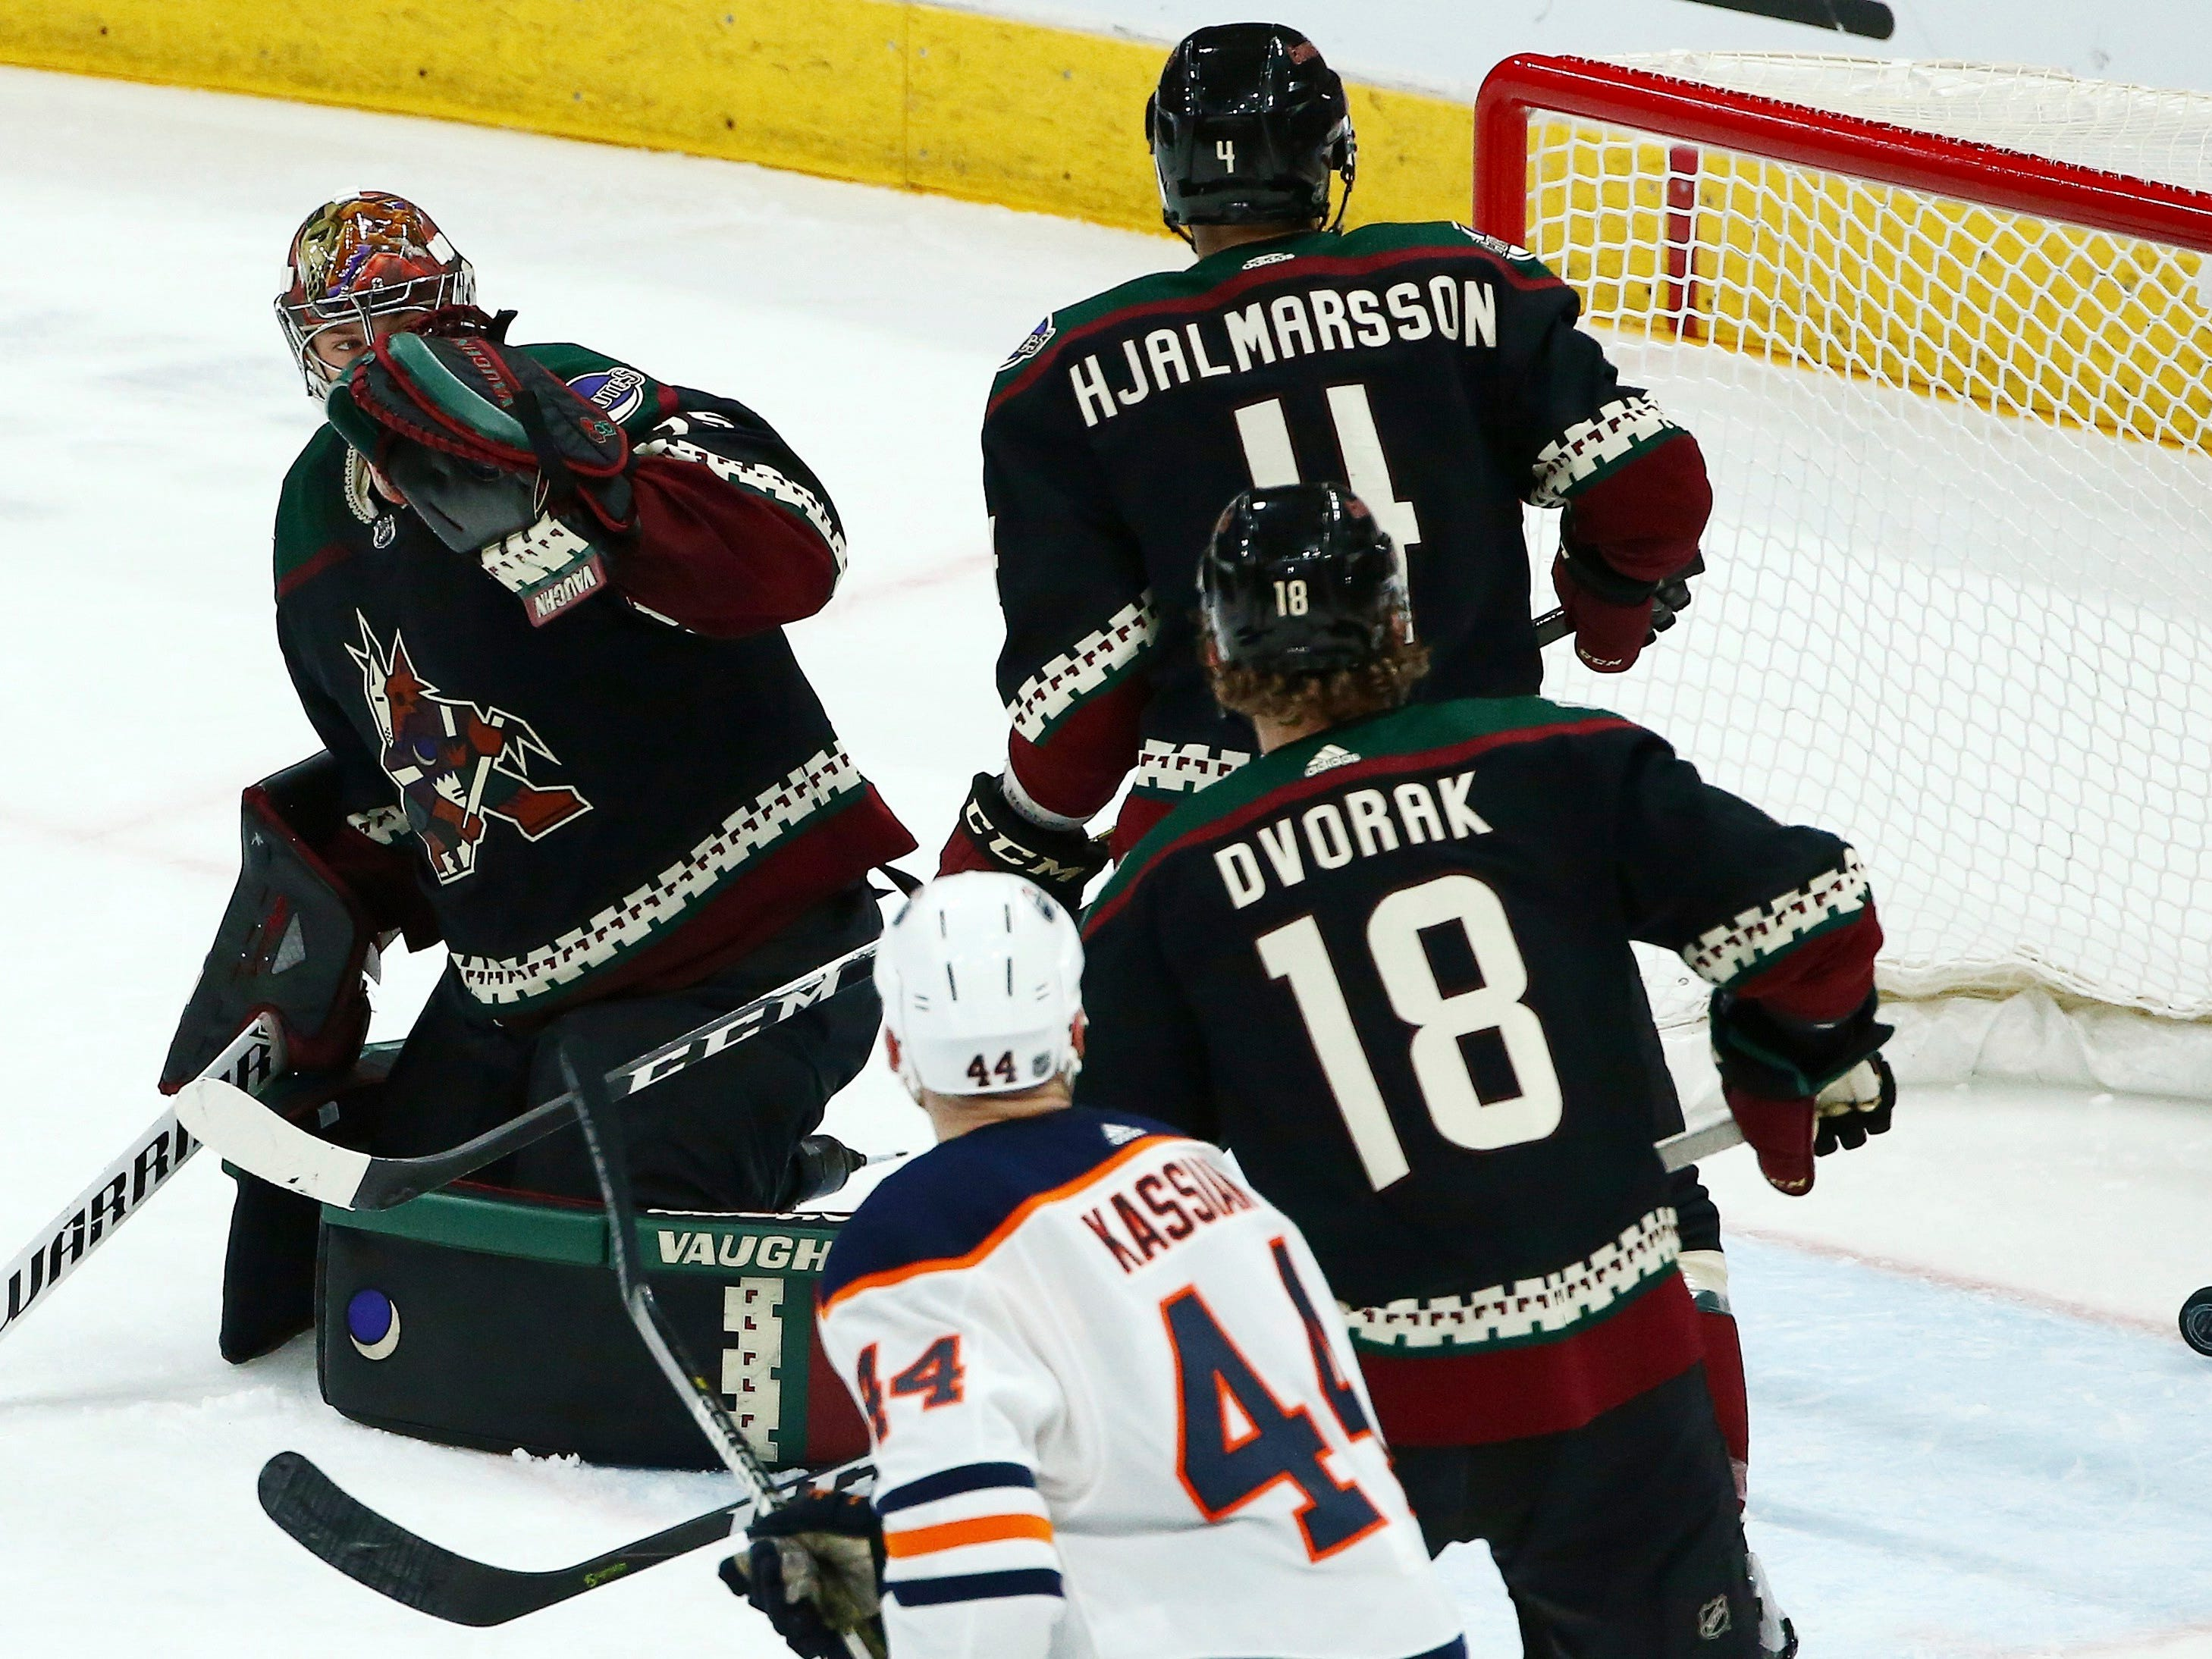 Arizona Coyotes goaltender Darcy Kuemper, left, gives up a goal to Edmonton Oilers' Matt Benning as Coyotes defenseman Niklas Hjalmarsson (4) and center Christian Dvorak (18) and Oilers right wing Zack Kassian (44) skate nearby during the second period of an NHL hockey game Saturday, March 16, 2019, in Glendale, Ariz.